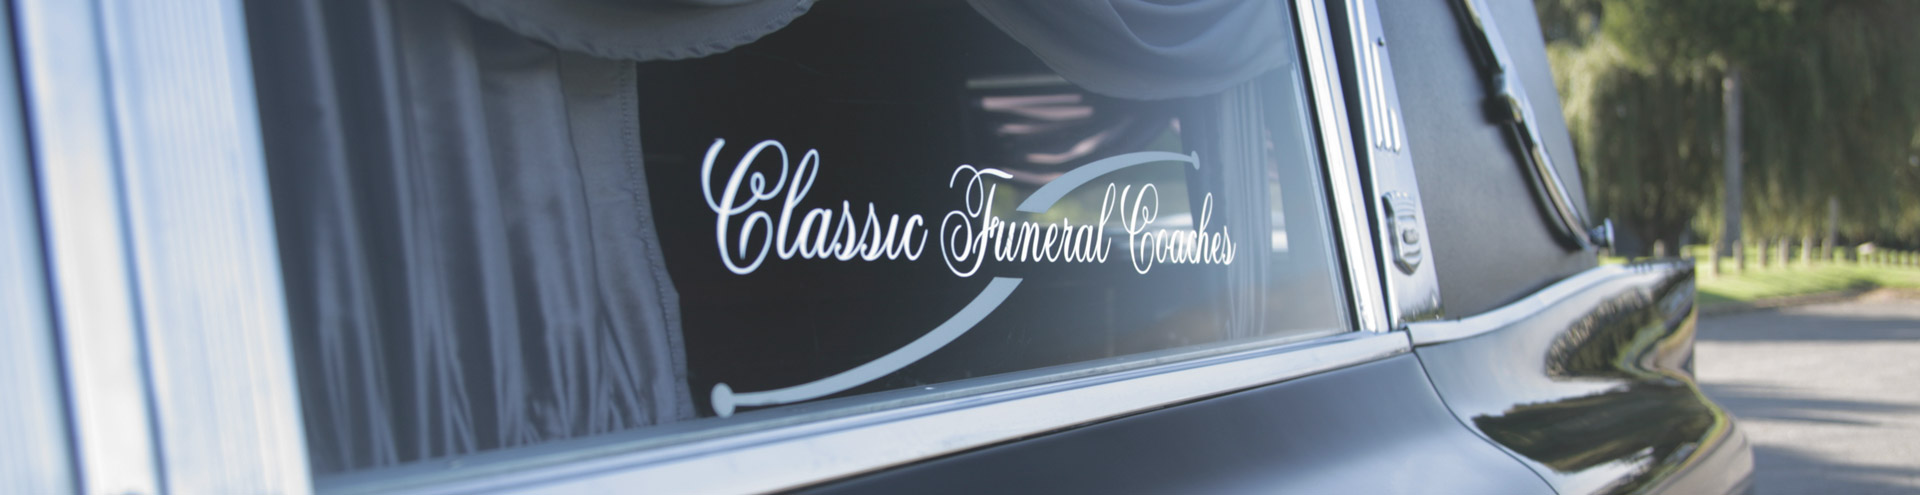 image of cadillac hearse